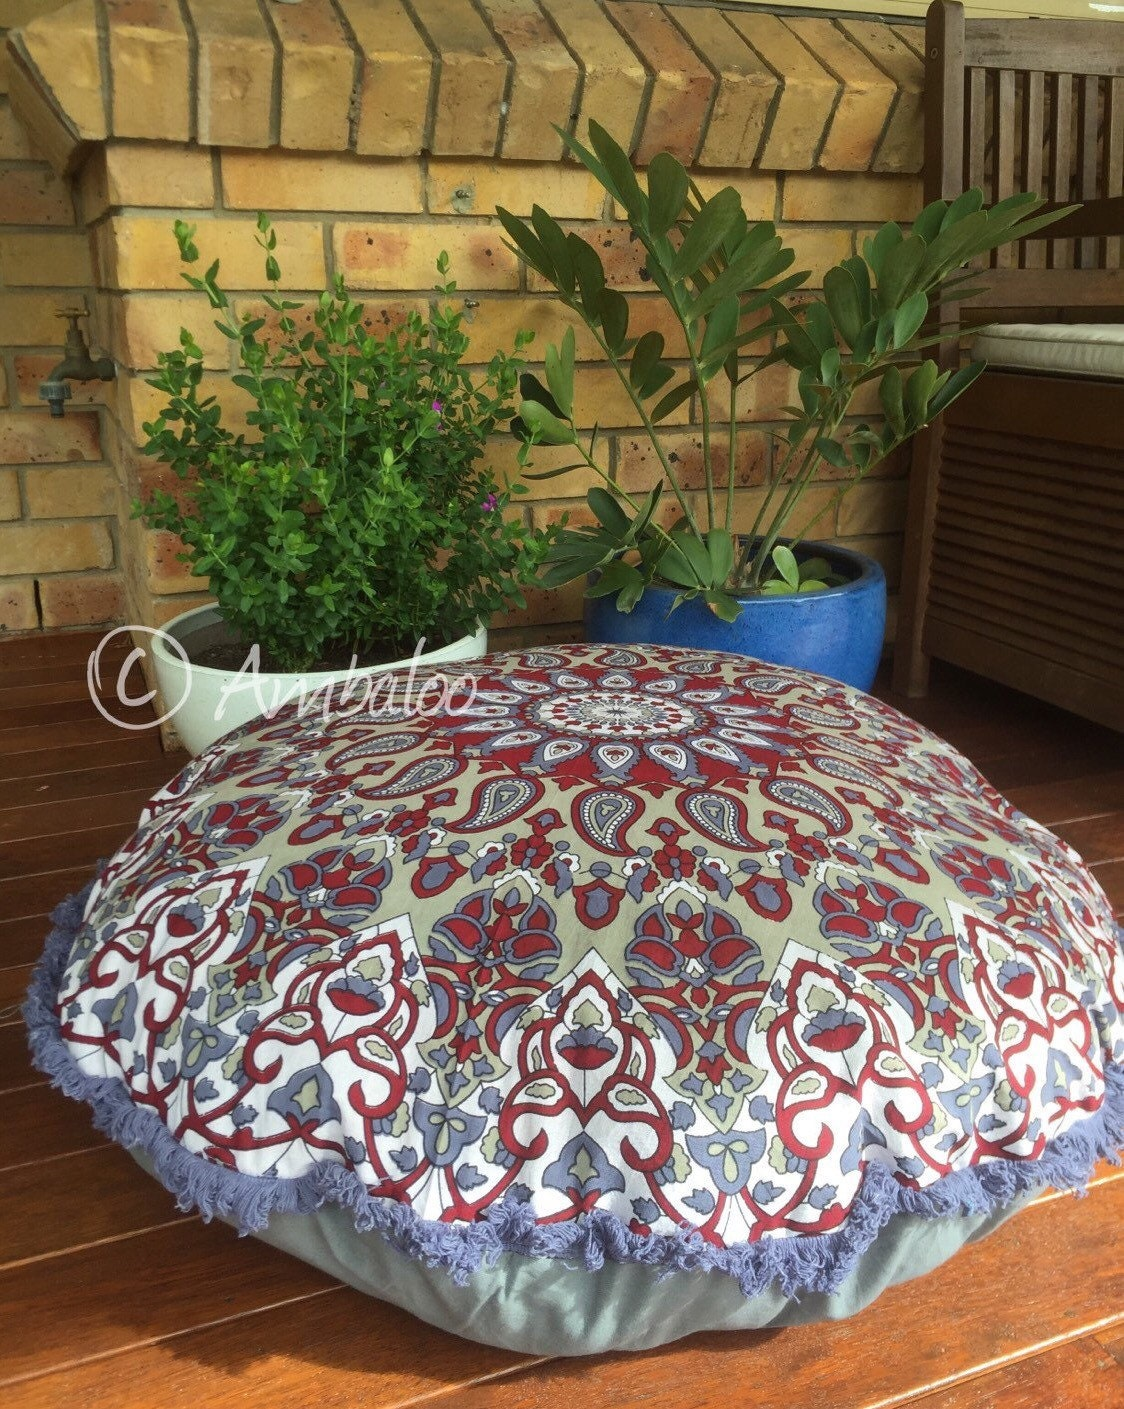 Large Floor Cushions Dog bed Meditation Dog Bed pillow by Ambaloo